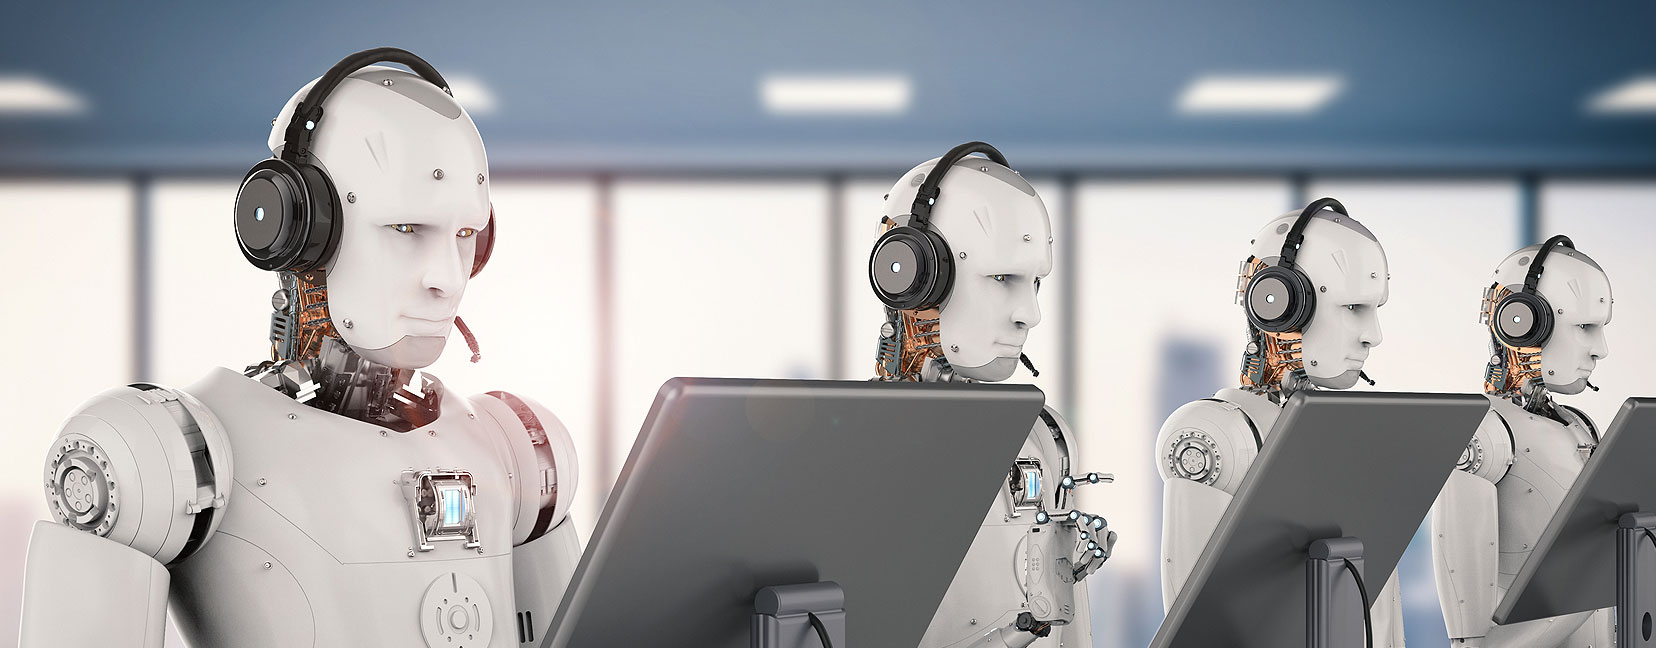 4 Things call centers need to know about Contact Center AI